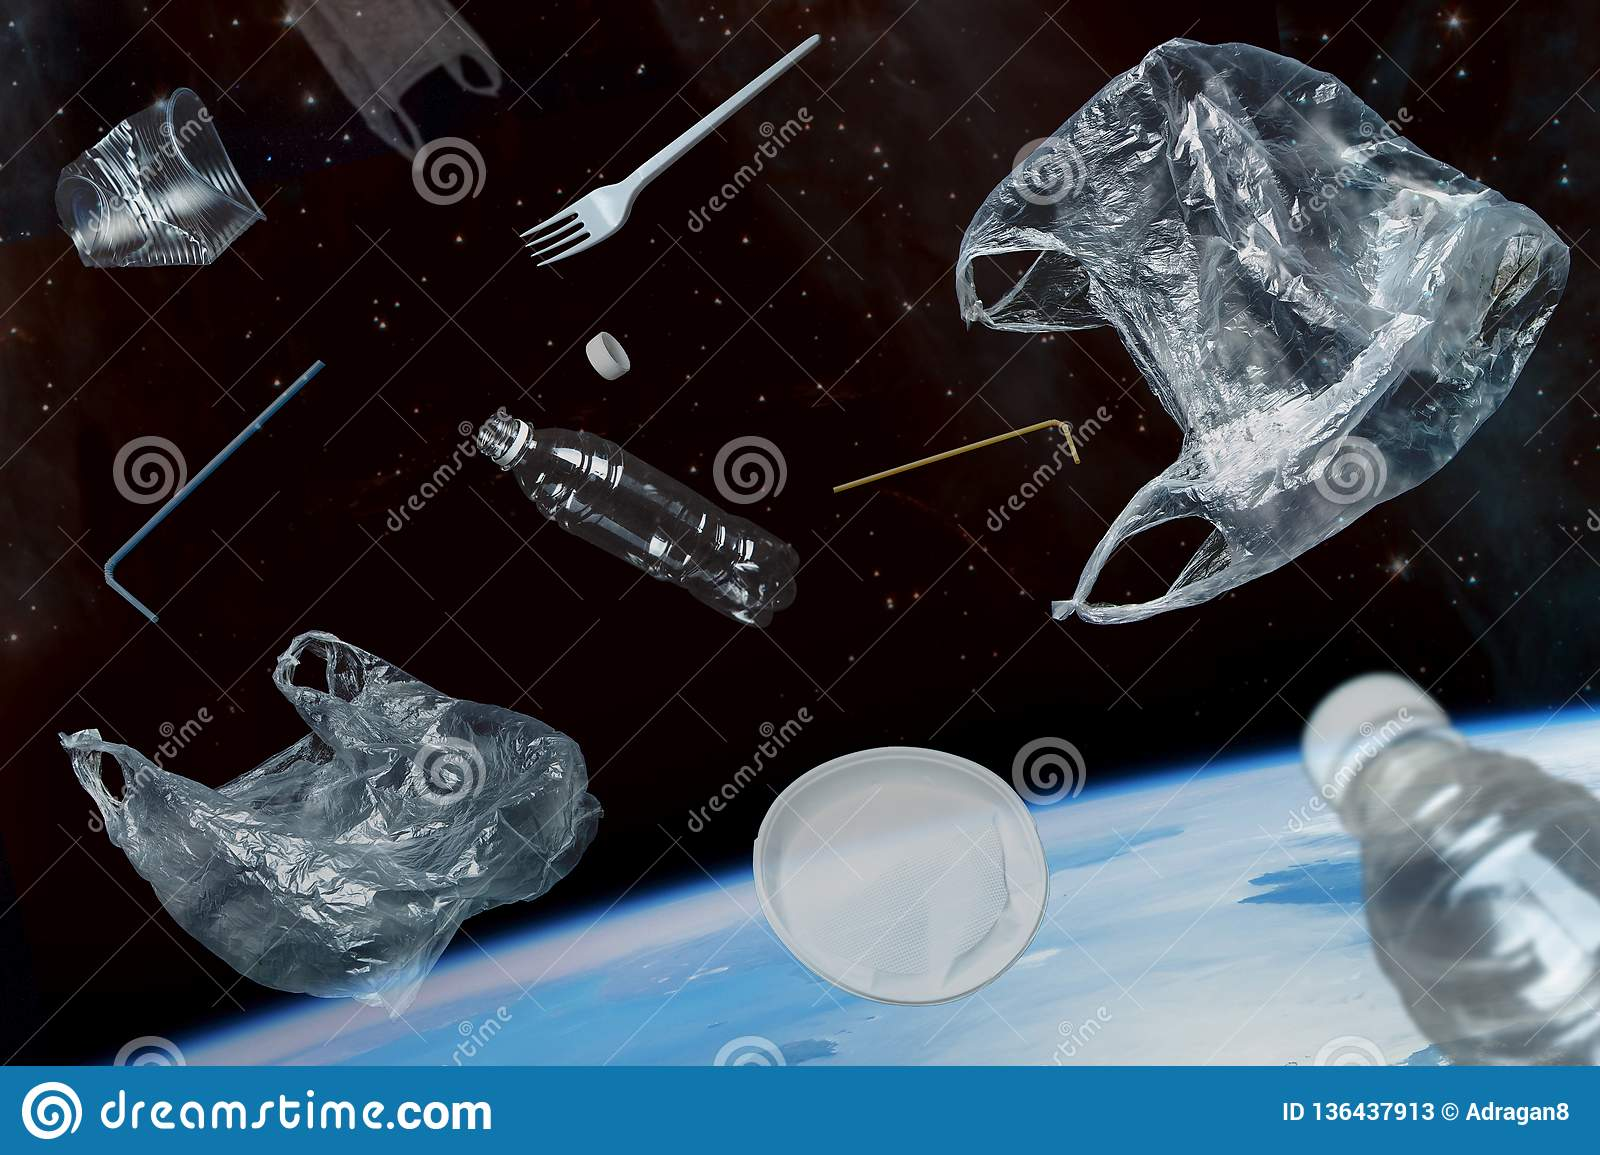 Space debris of planet Earth. Plastic debris in space. Elements of this image furnished by NASA.